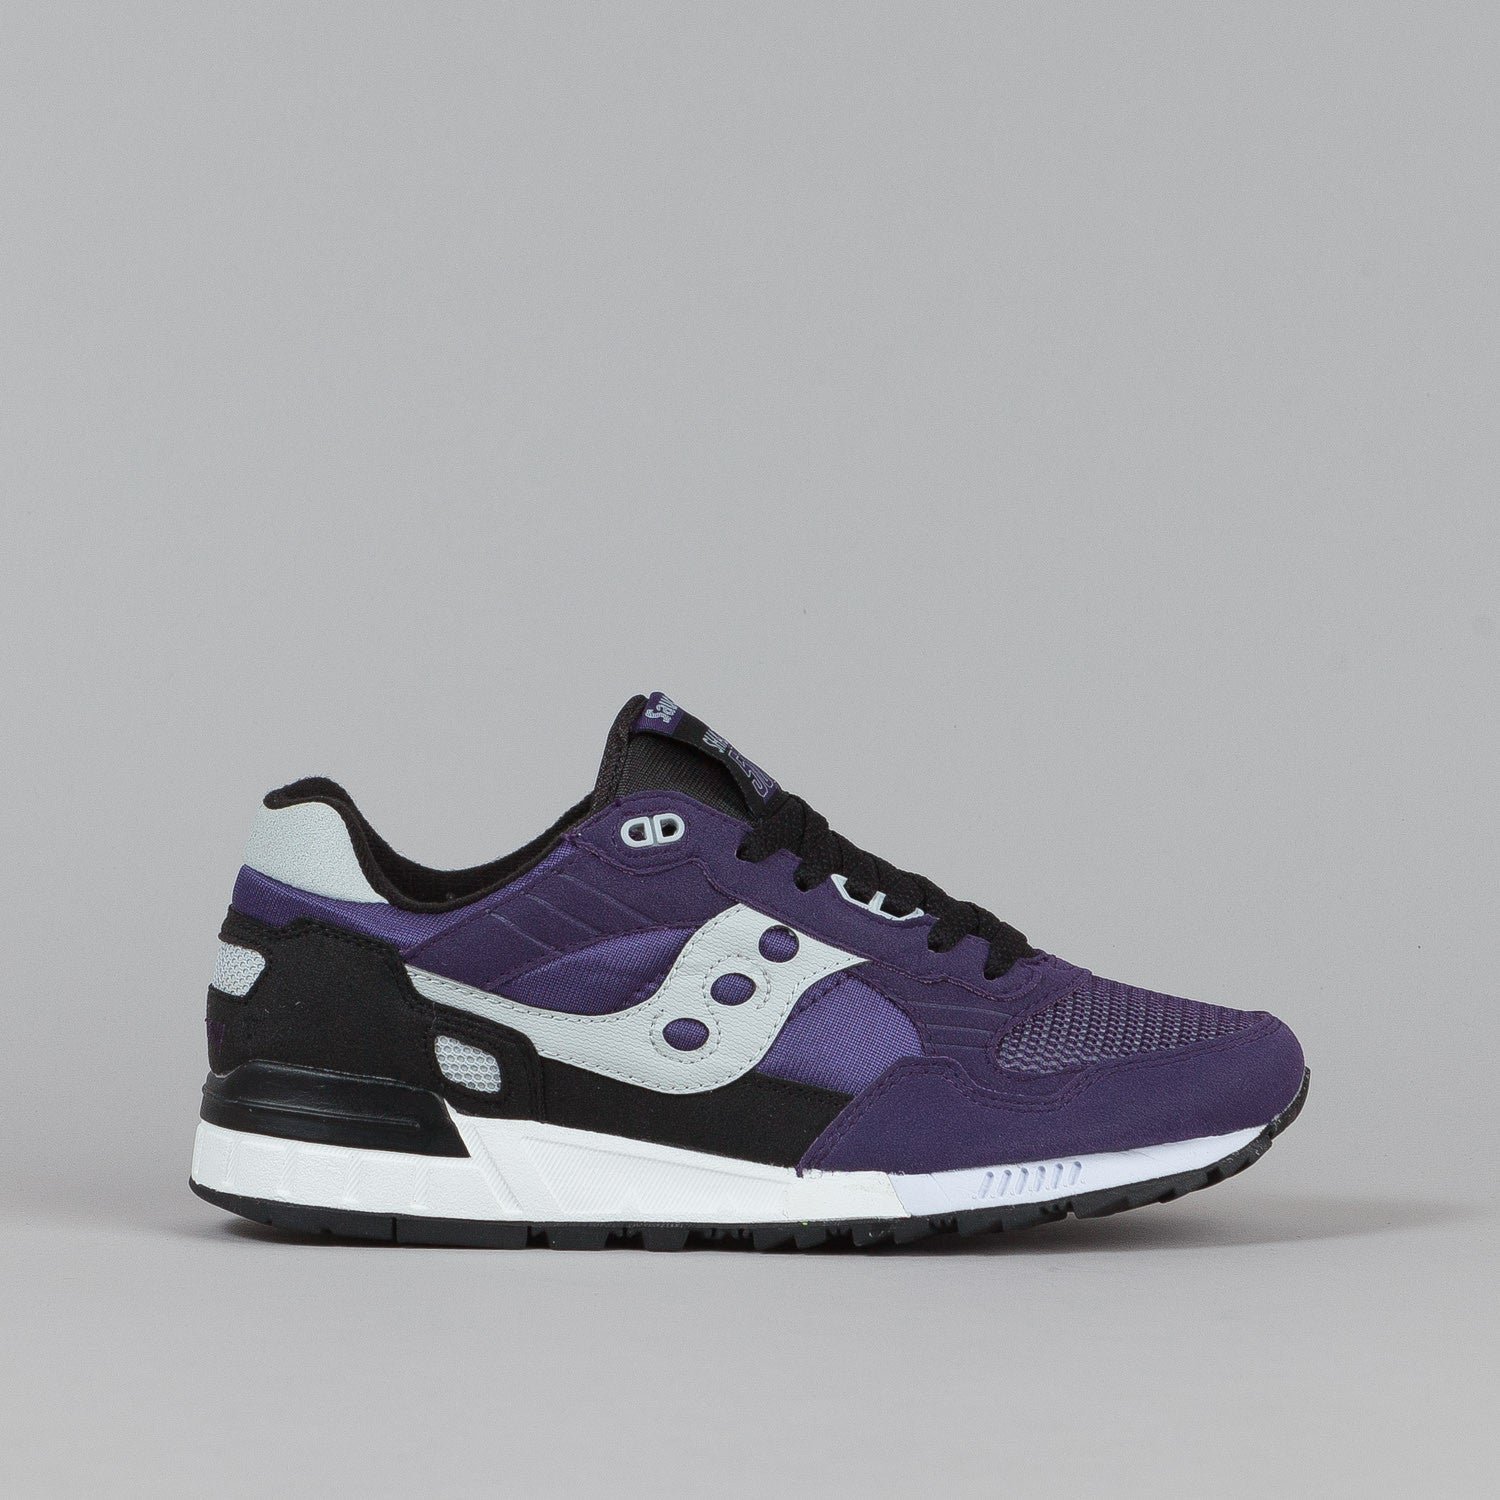 Saucony Shadow 5000 Shoes 'Fresh Picked Blackberry'